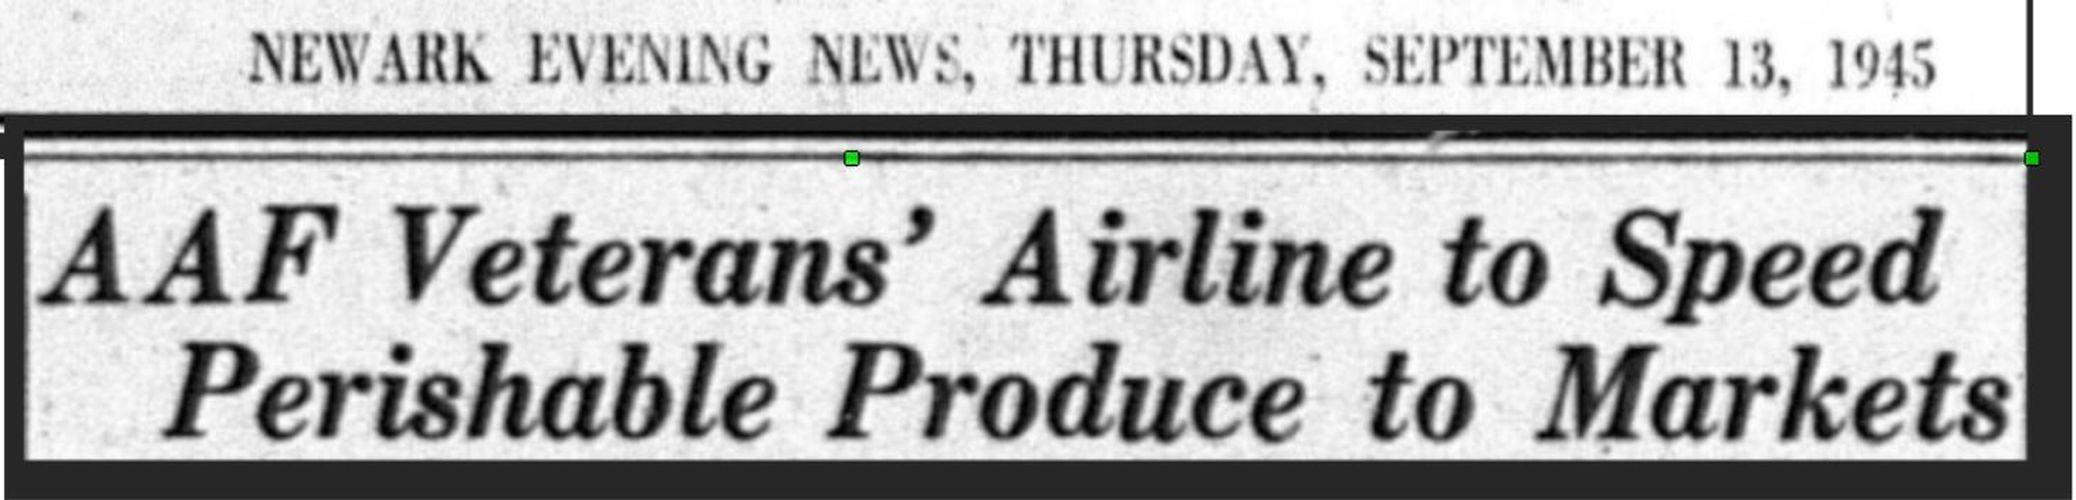 1945 Press coverage about founders of Veterans Air plans to fly perishable produce to their markets.